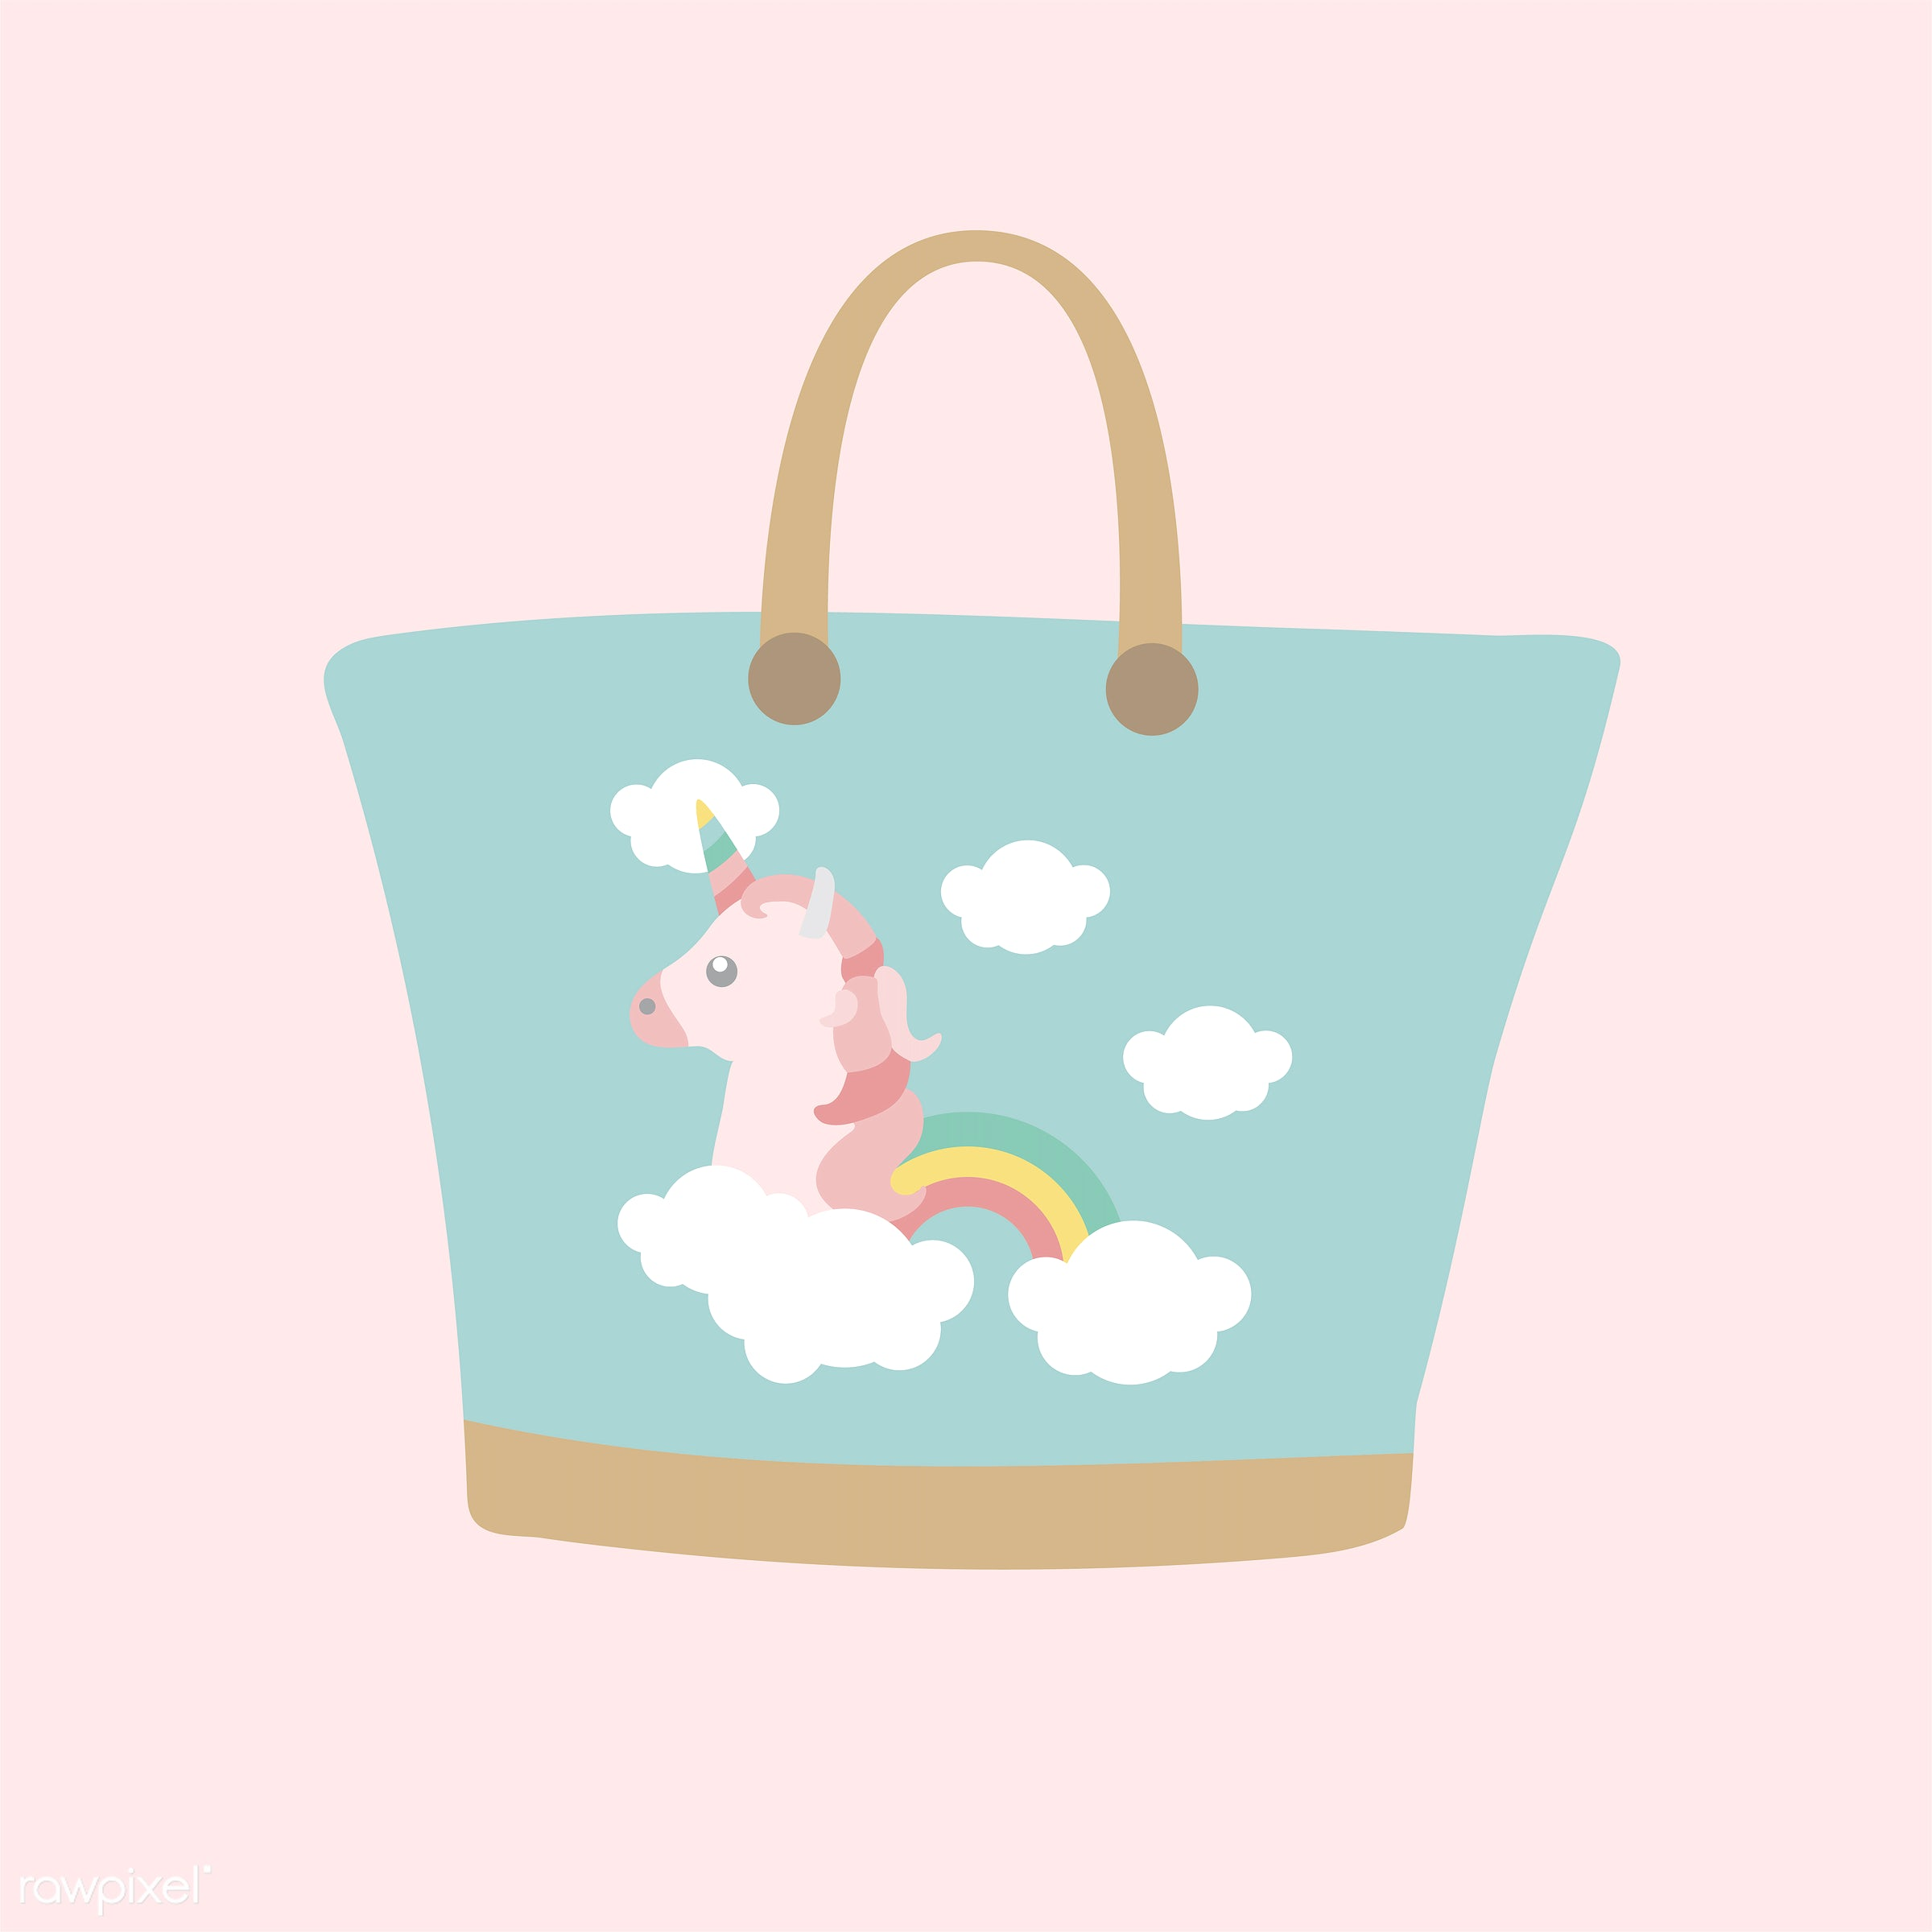 vector, illustration, graphic, cute, sweet, girly, pastel, unicorn, bag, rainbow, beach bag